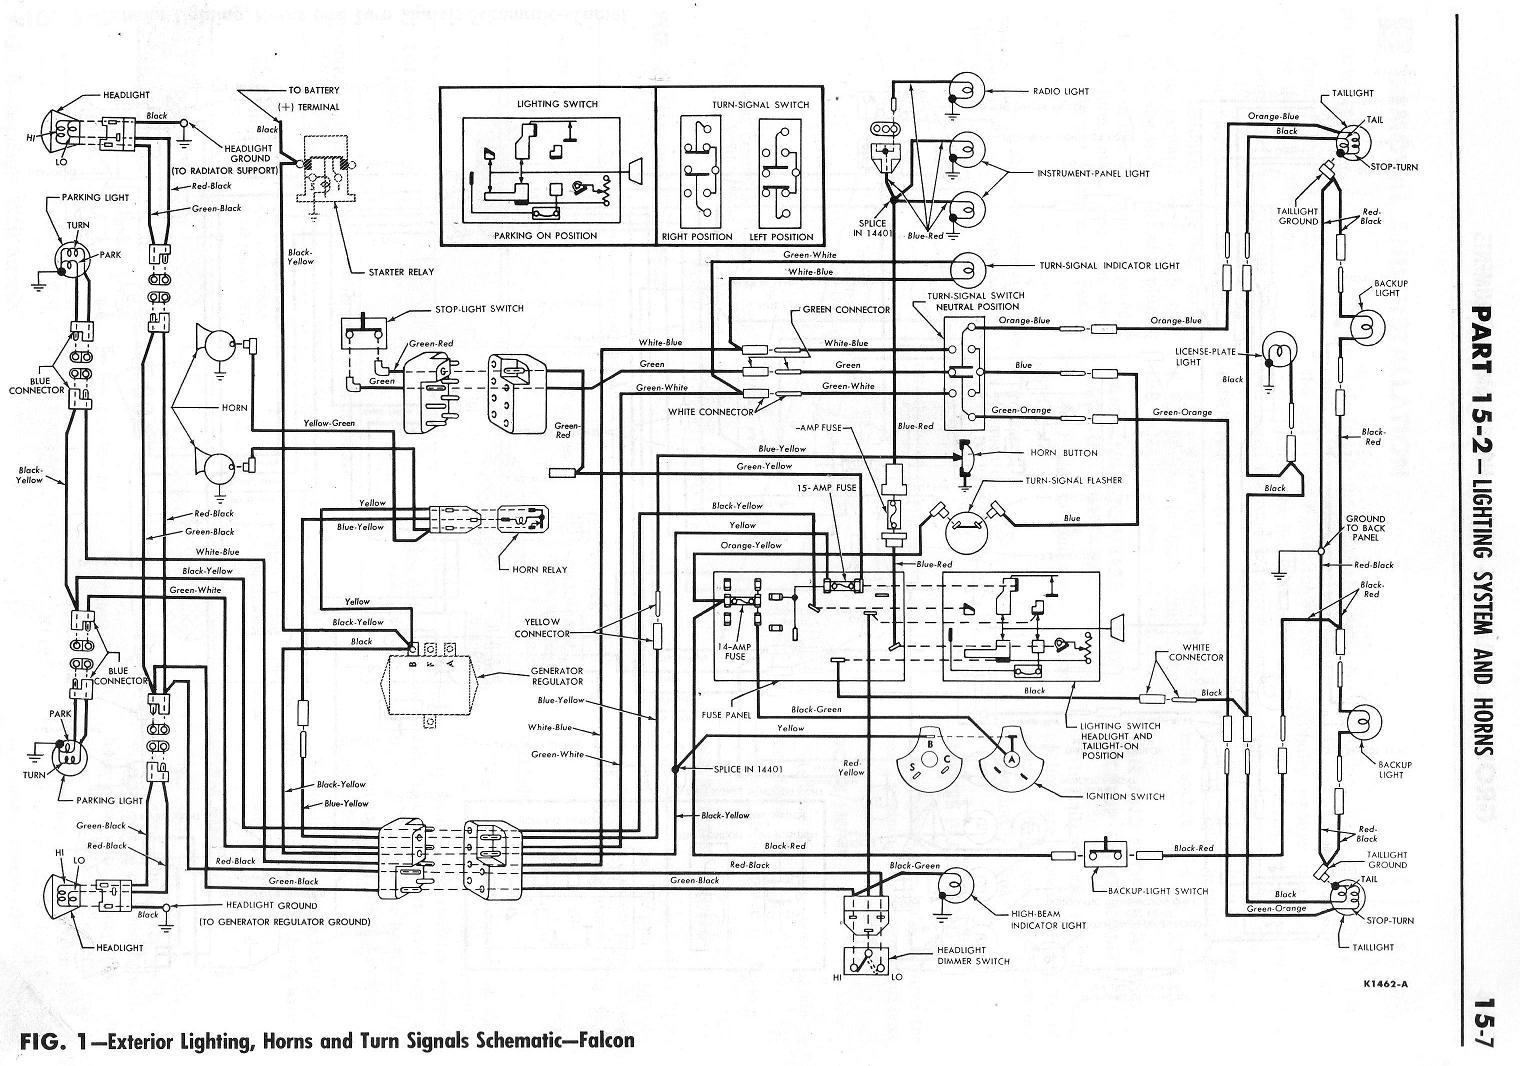 1978 Fairmont Wiring Diagram - Wiring Diagrams Hubs - Car Trailer Wiring Diagram Australia